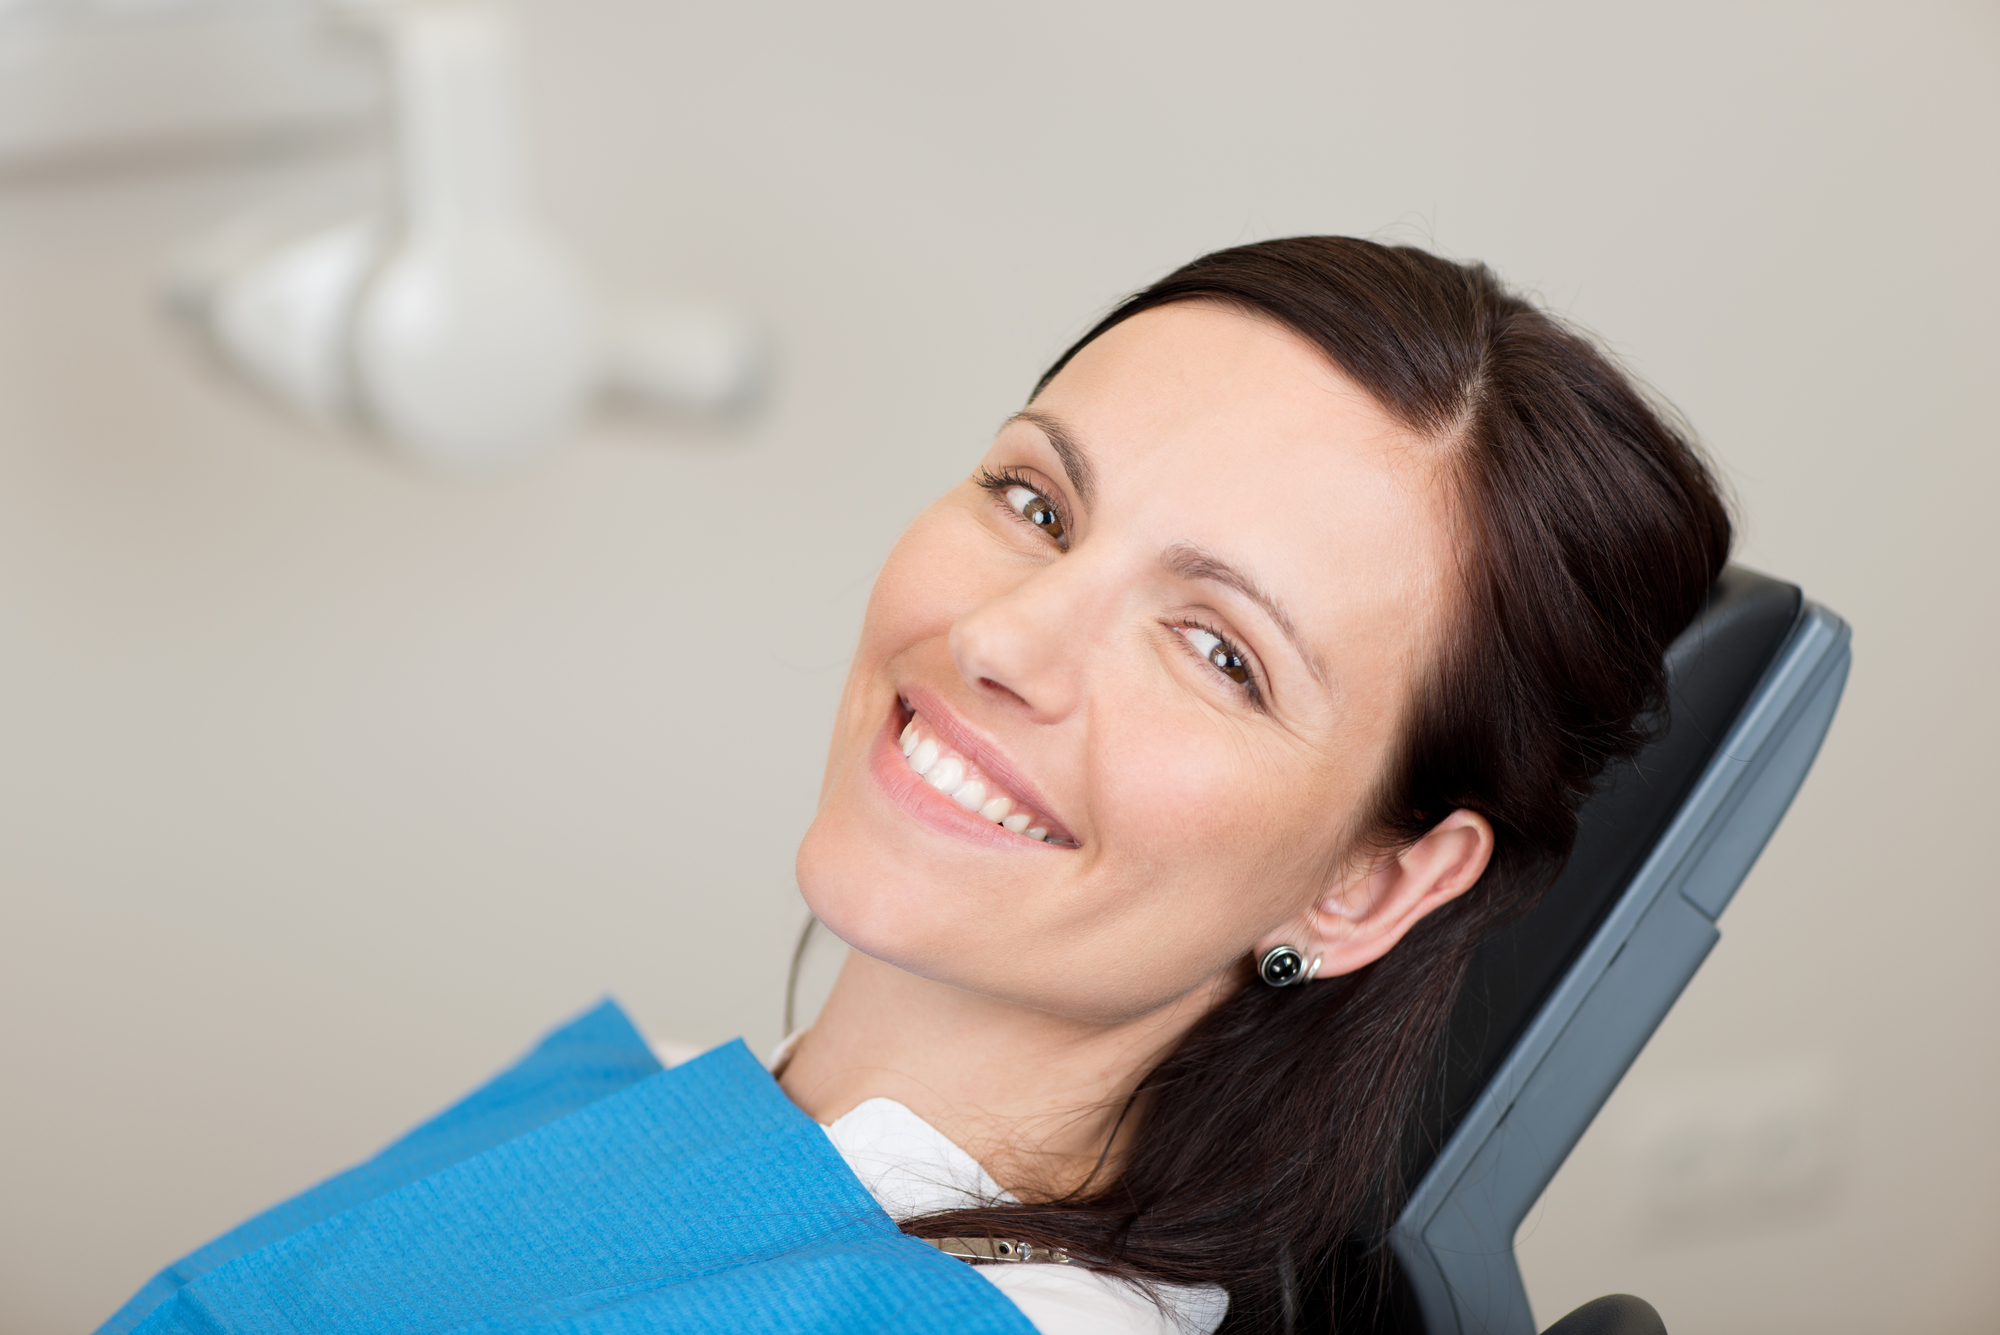 who is a great oral surgeon aventura?